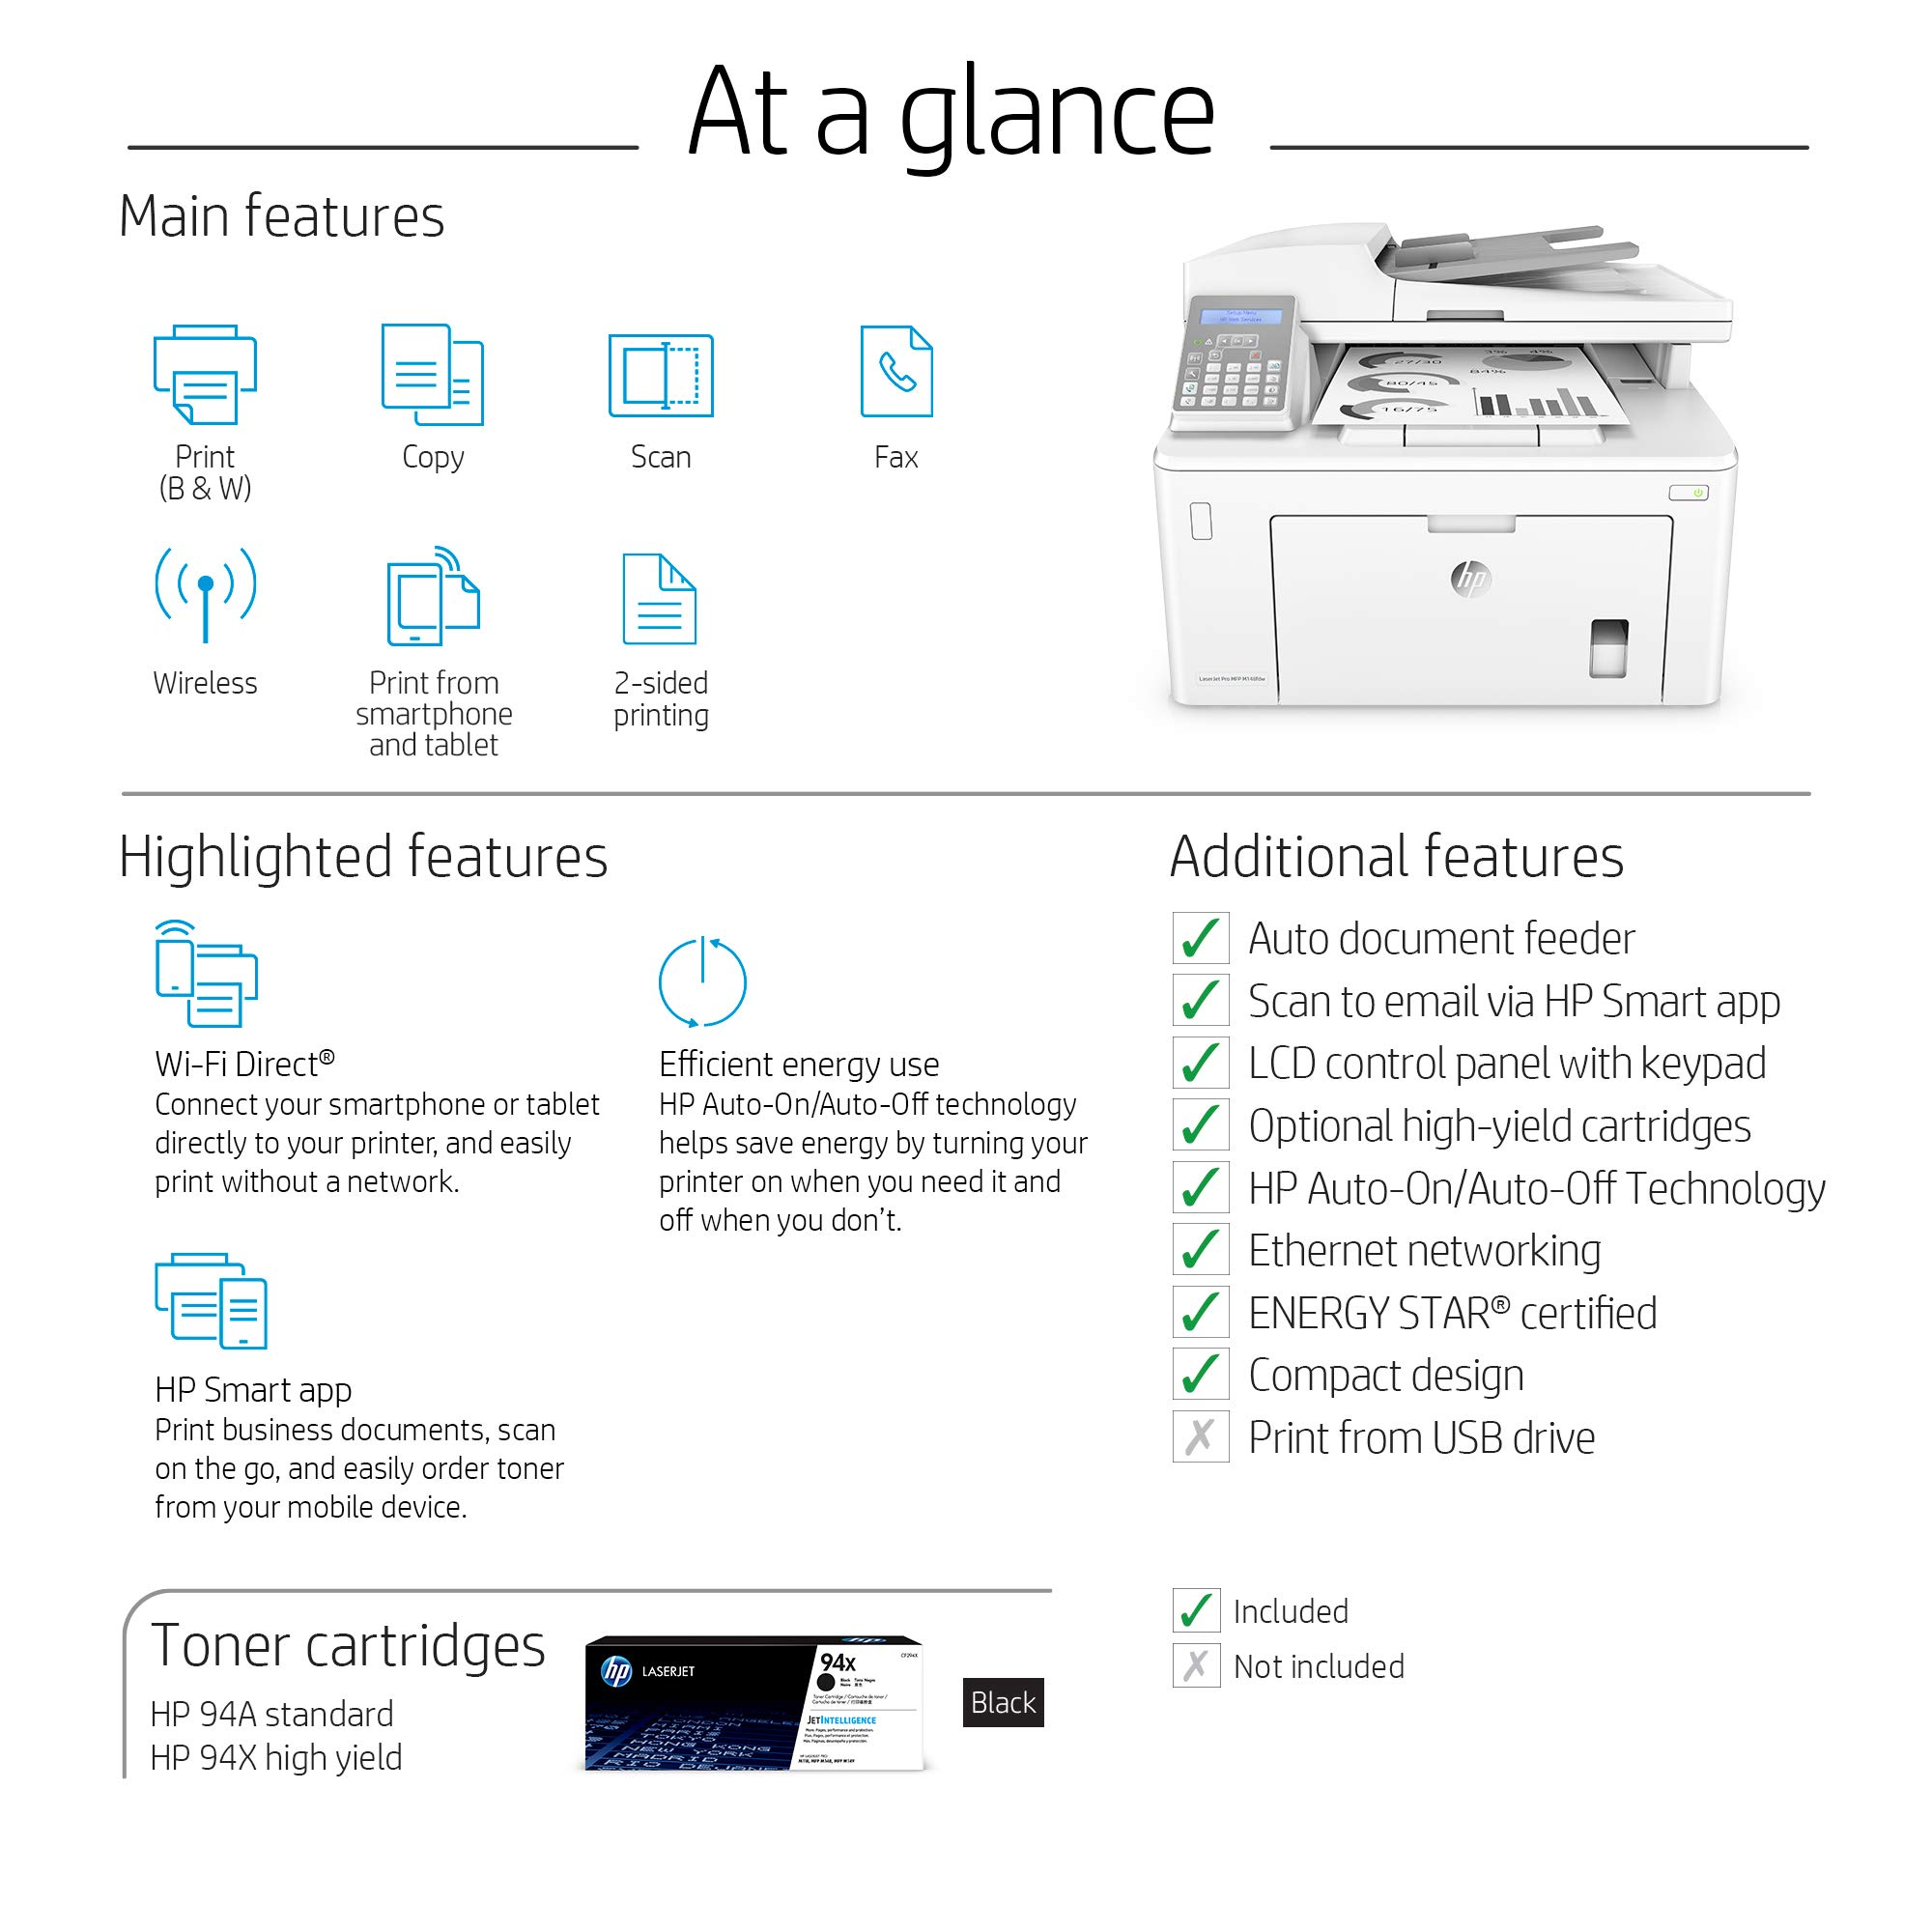 HP Laserjet Pro M148fdw All-in-One Wireless Monochrome Laser Printer with Auto Two-Sided Printing, Mobile Printing, Fax & Built-in Ethernet (4PA42A) by HP (Image #6)